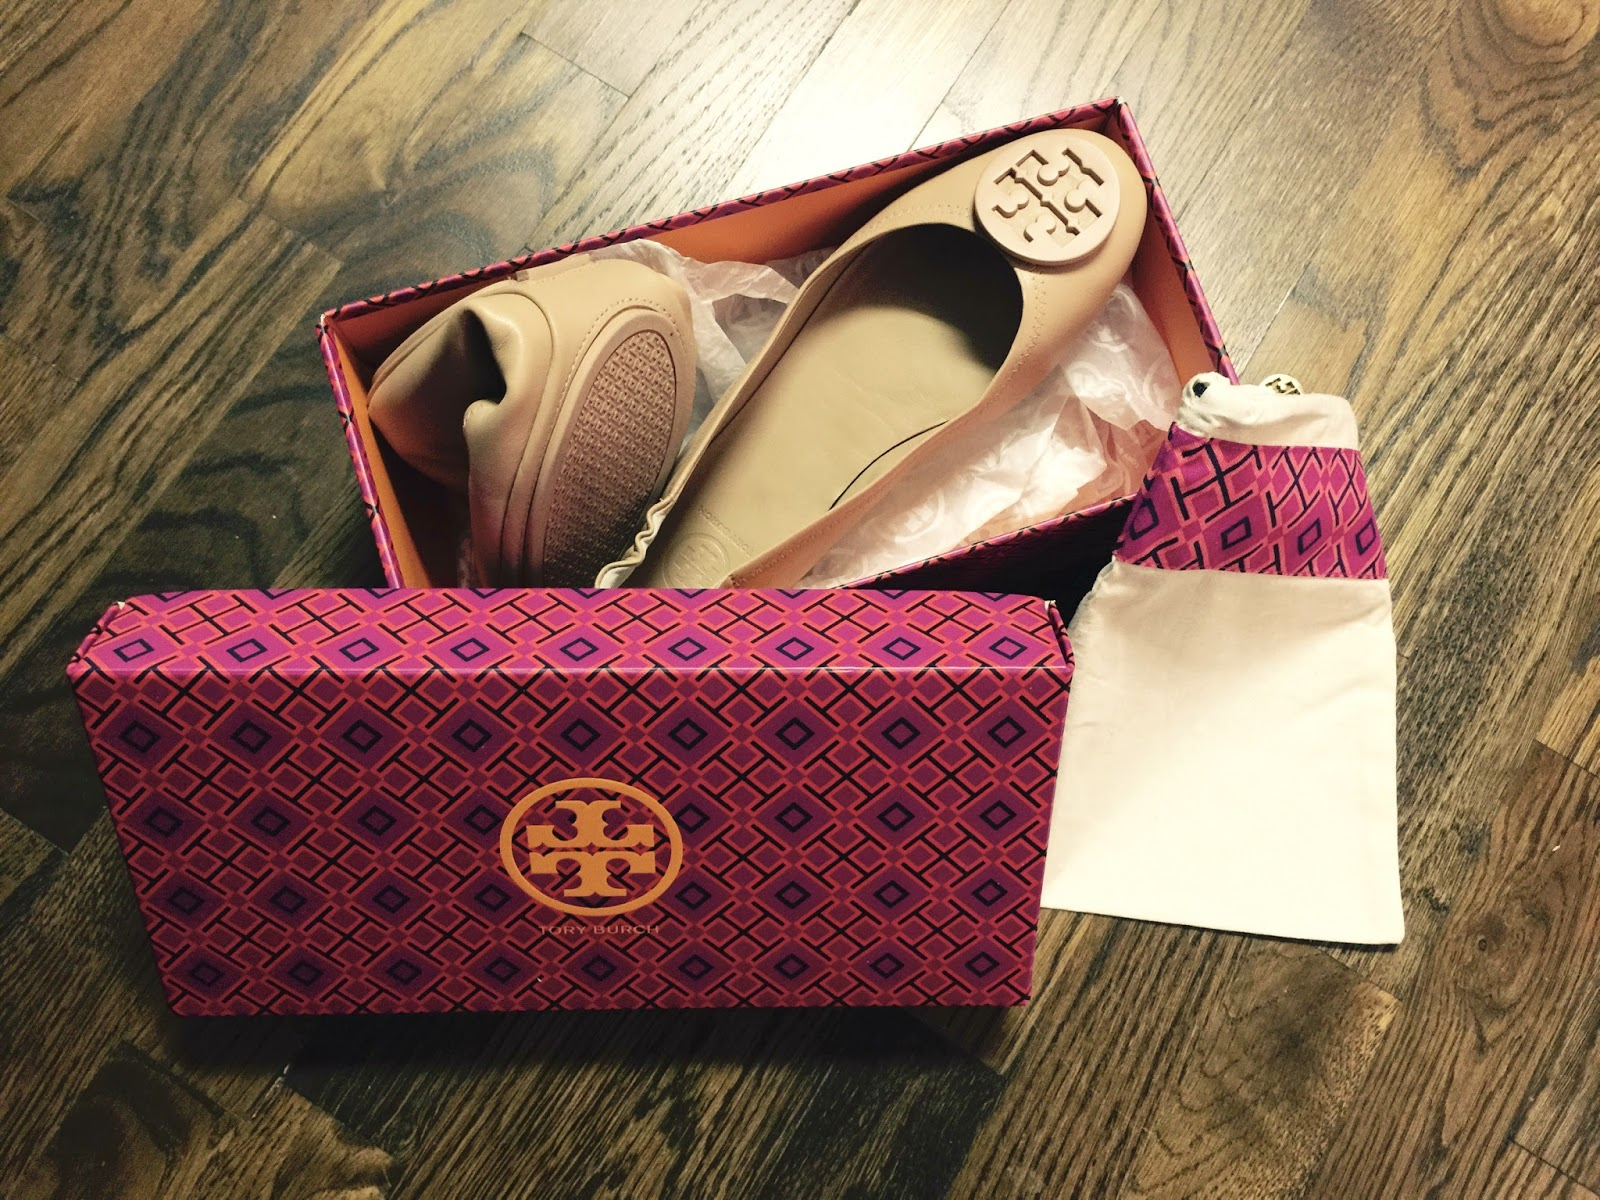 bdfd3a1d38d354 We ve all seen the Tory Burch Reva Ballerina Flat - you know the black  ballet flat with a metal medallion